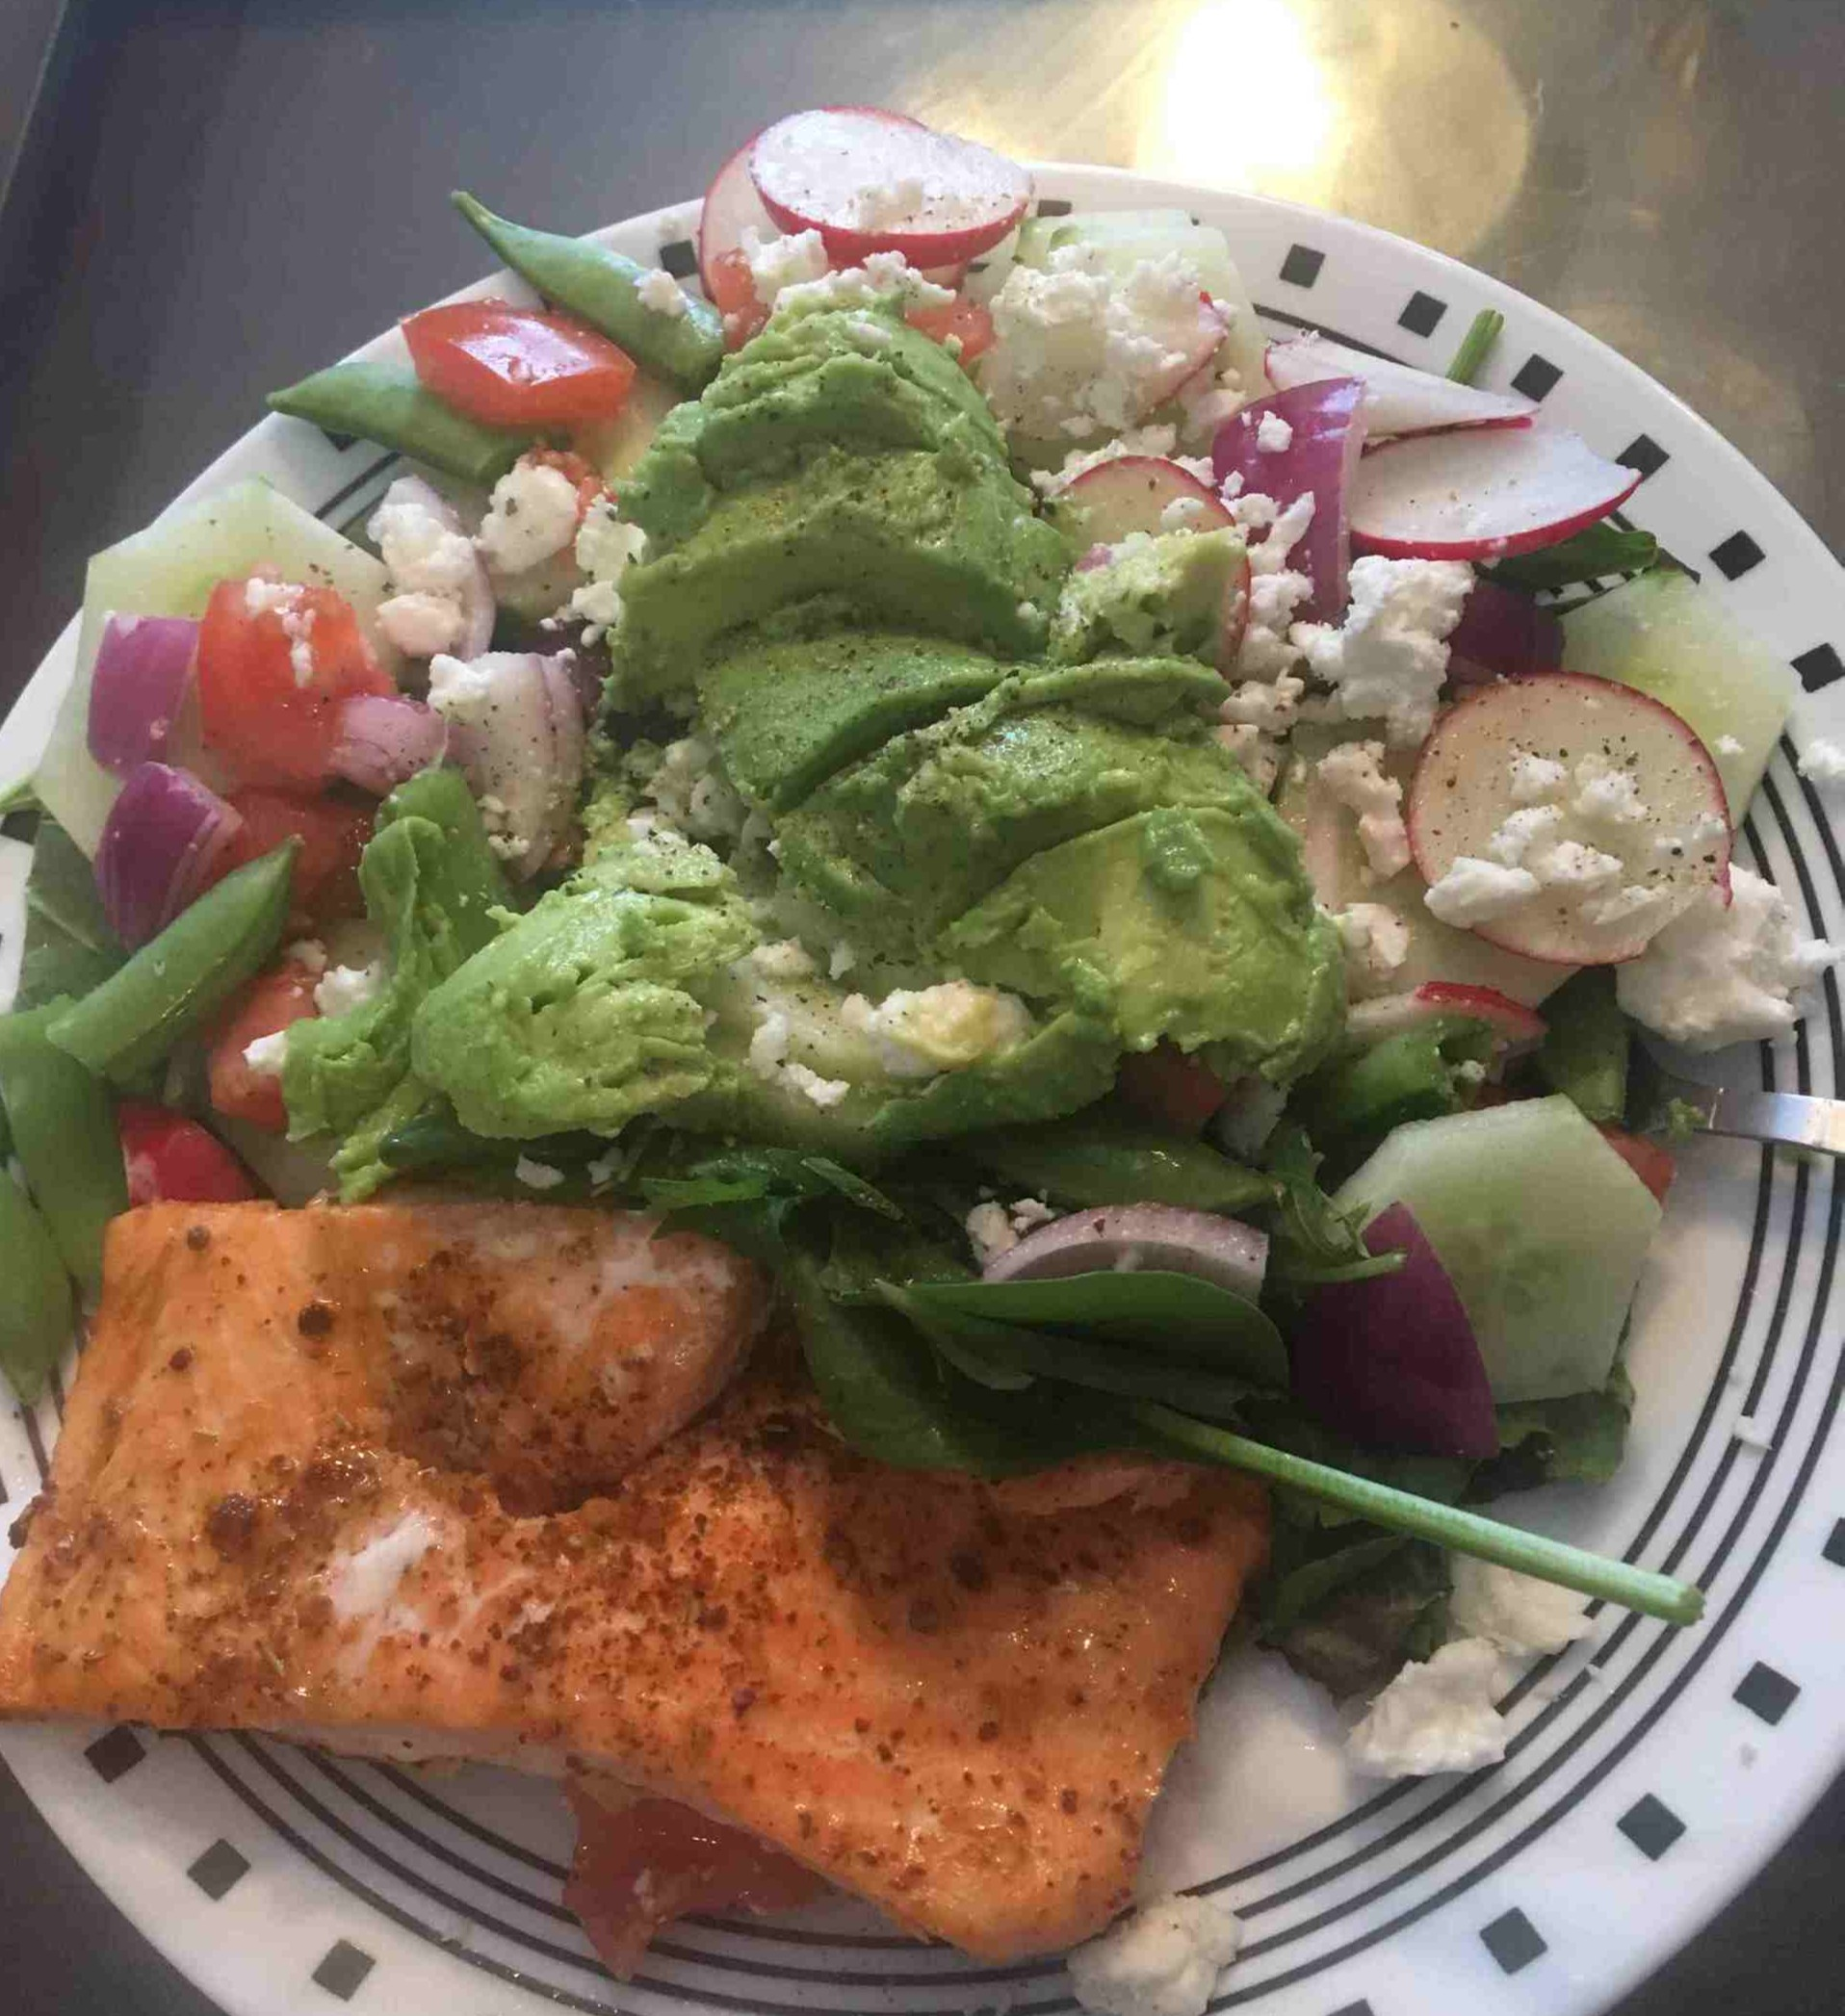 Baked Salmon and Salad by Sarah W.